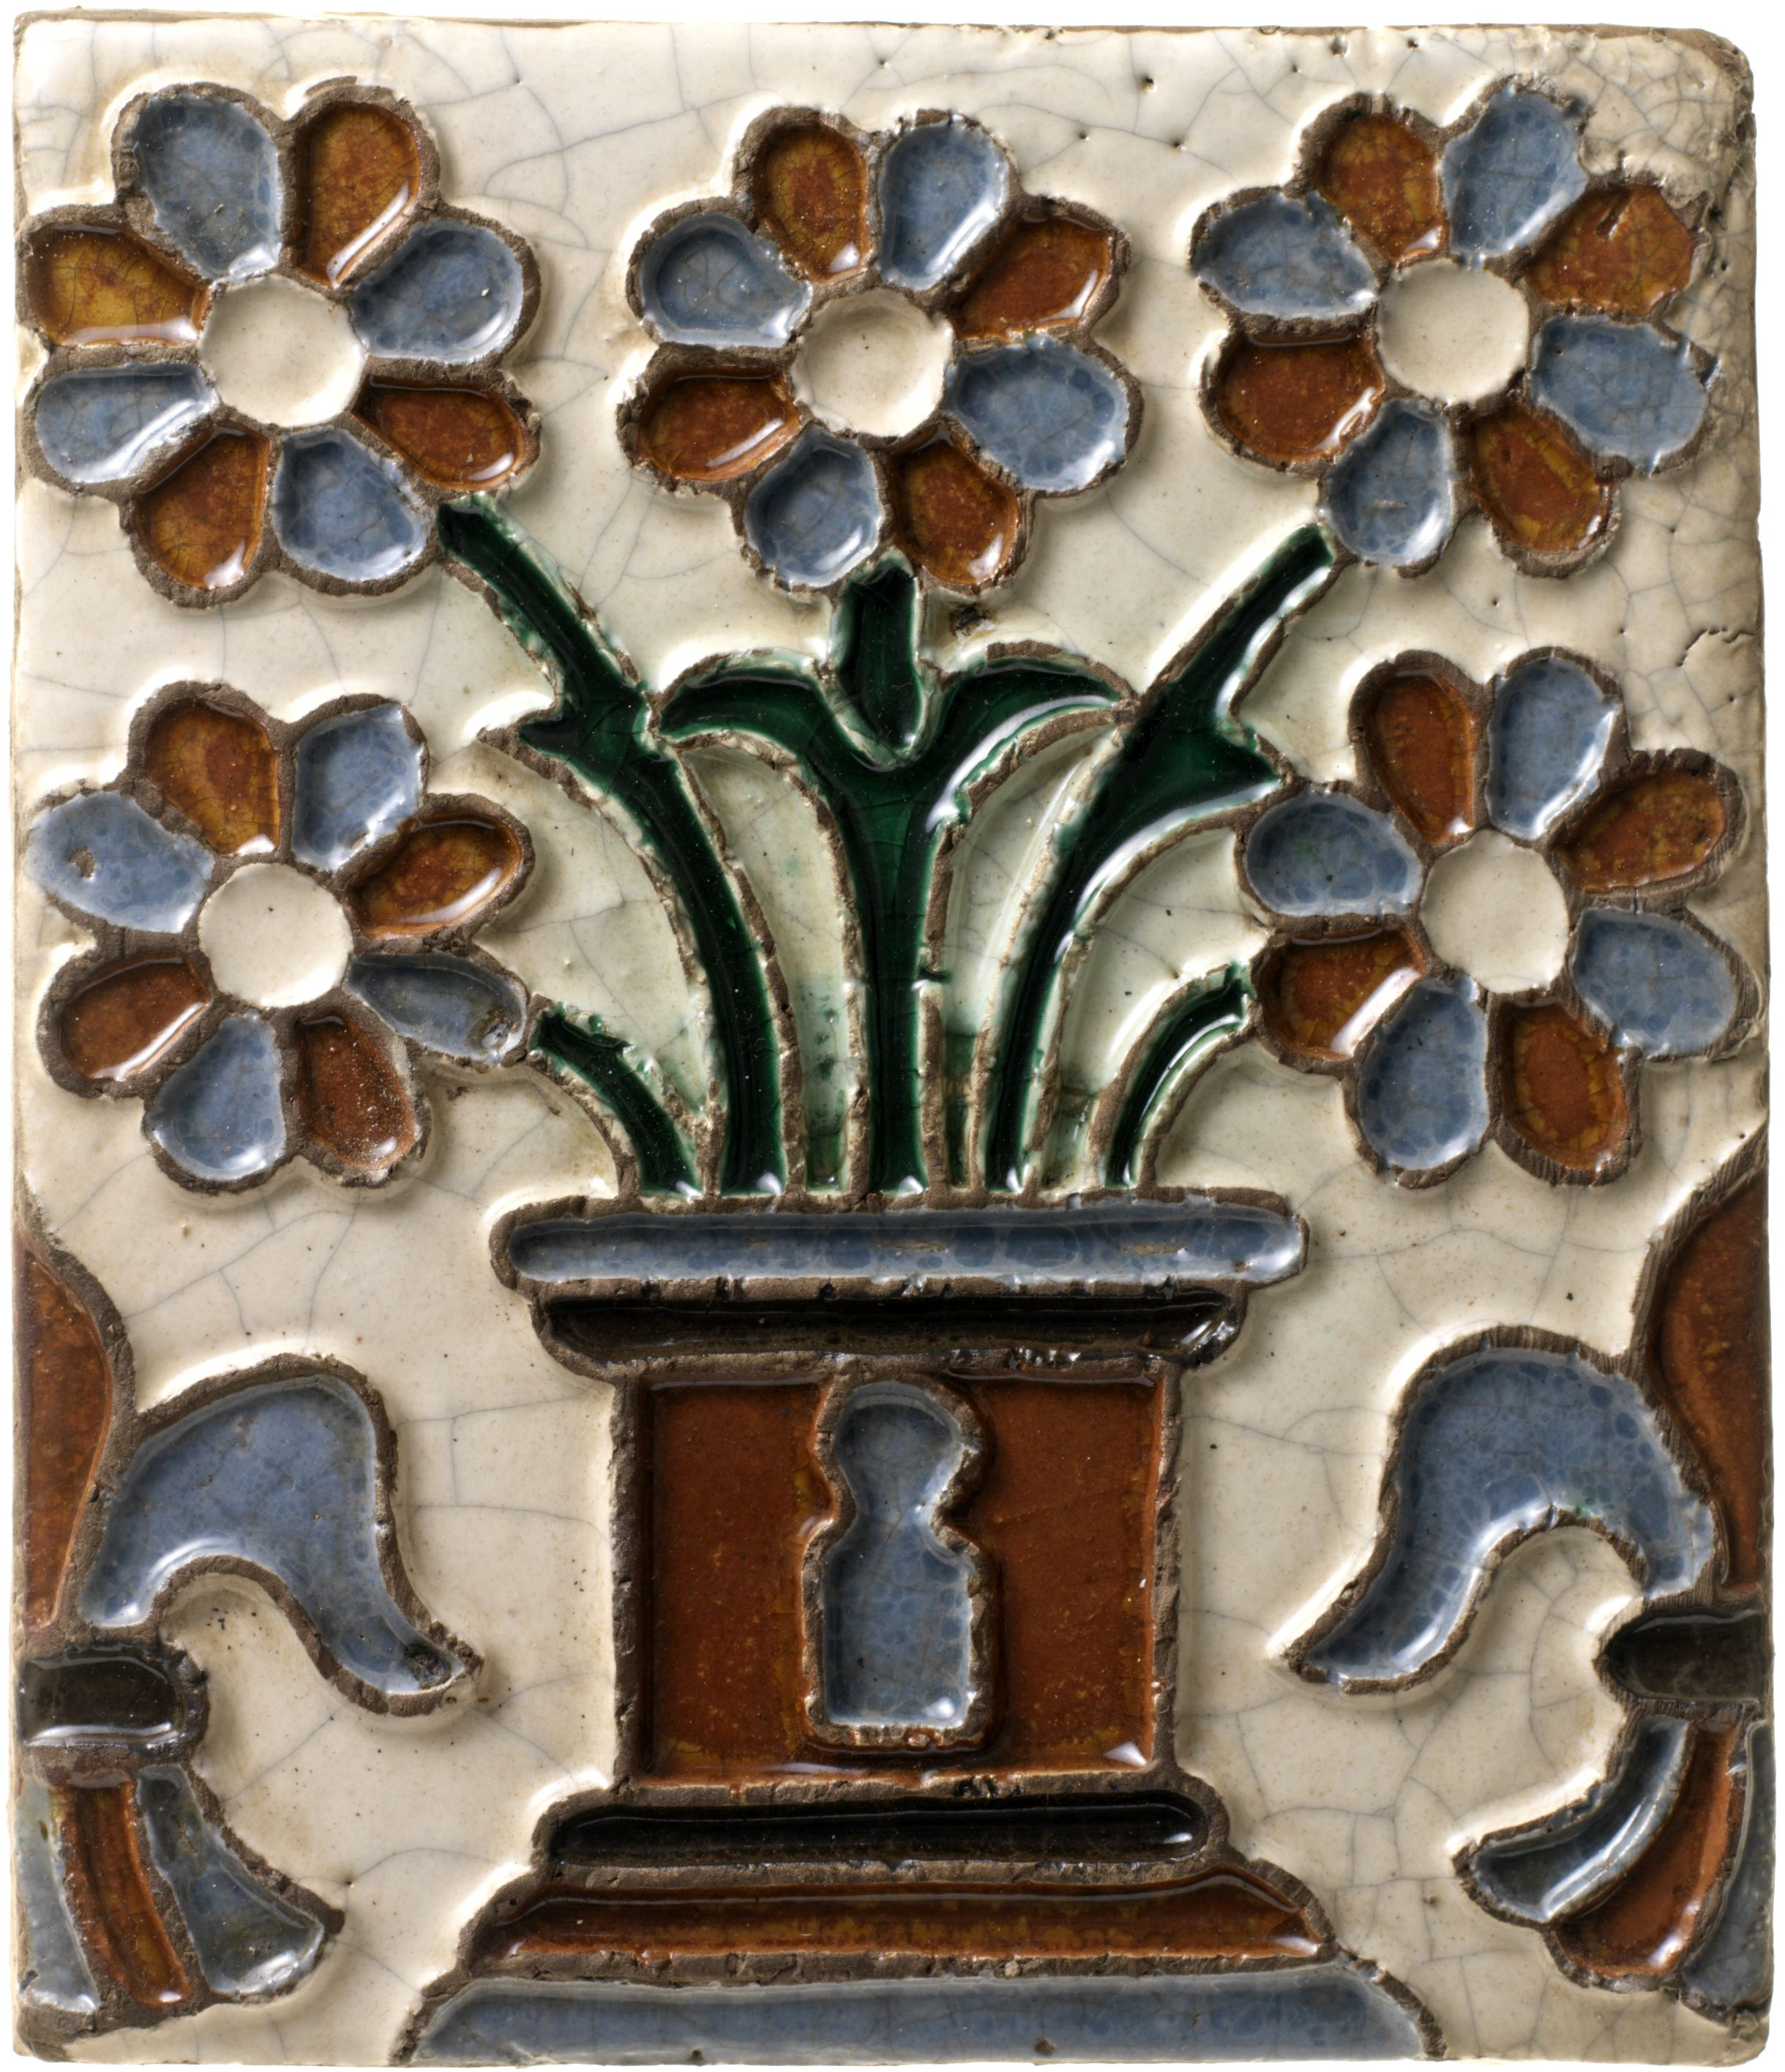 Spanish Antique Reproduction Of Arista Ceramic Tile From